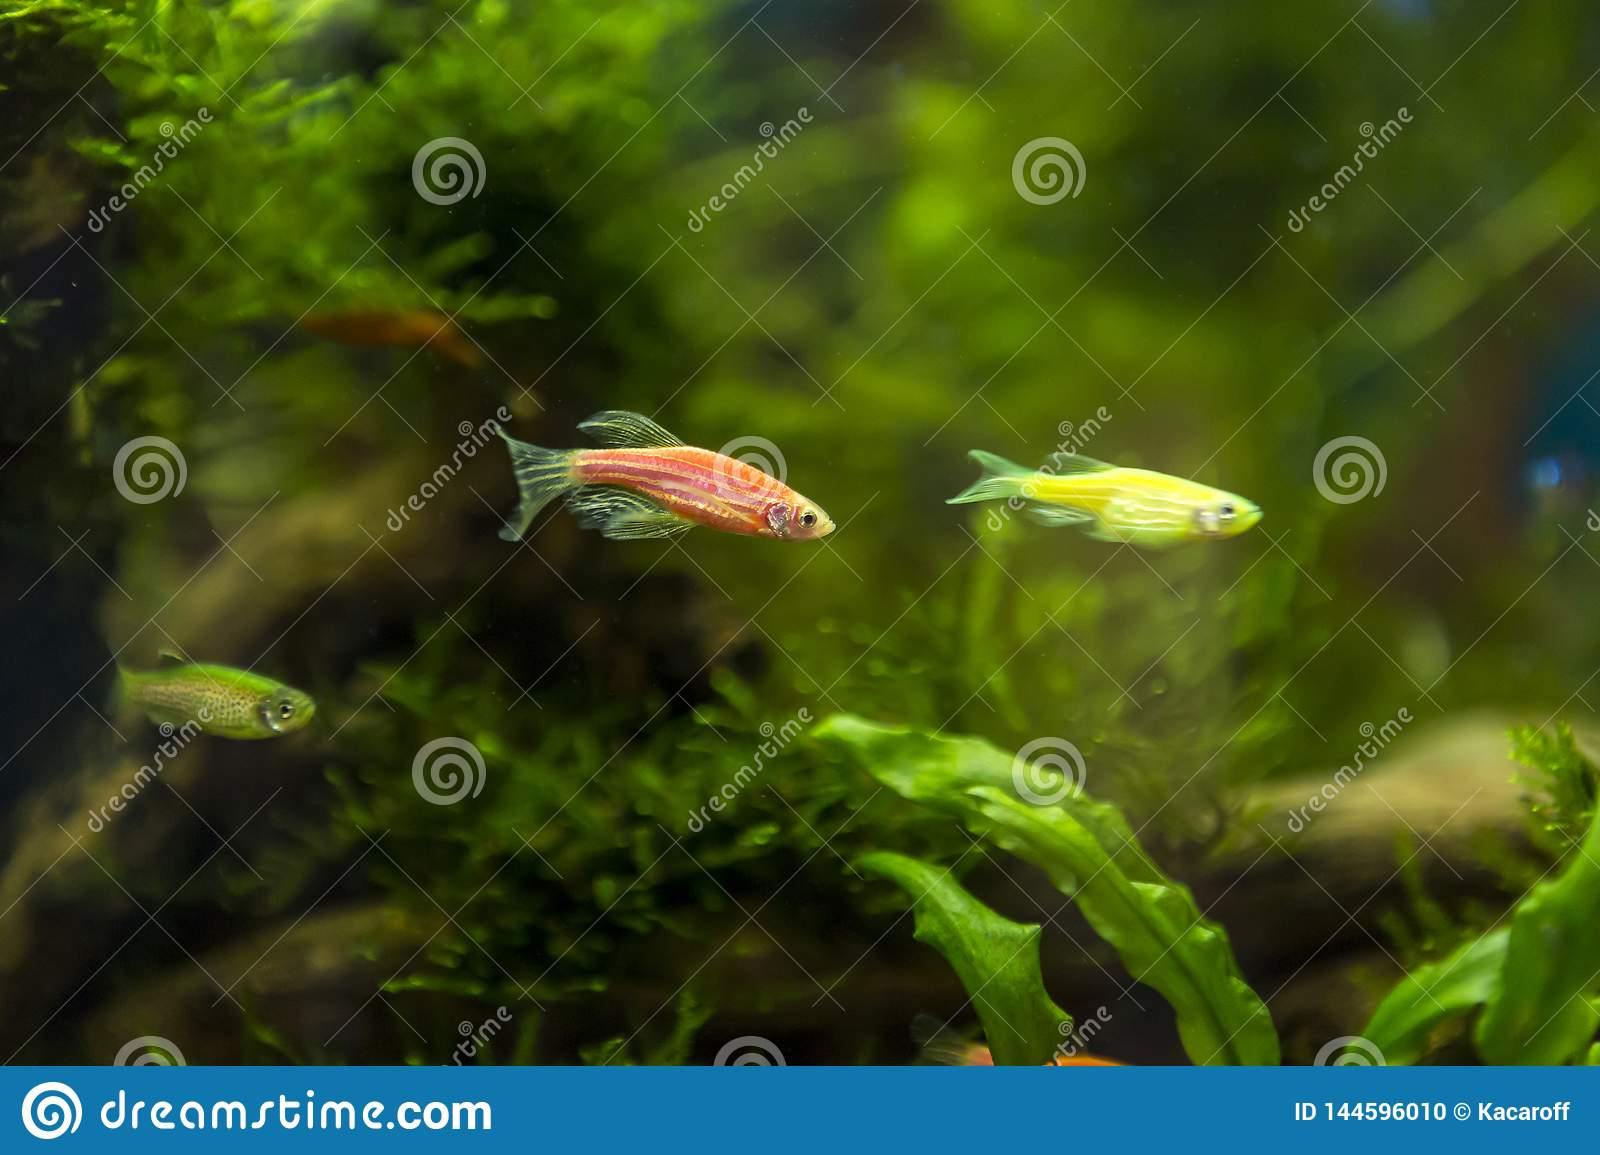 Home-made Aquarium With Small Flower Fish Against The Backdrop Of